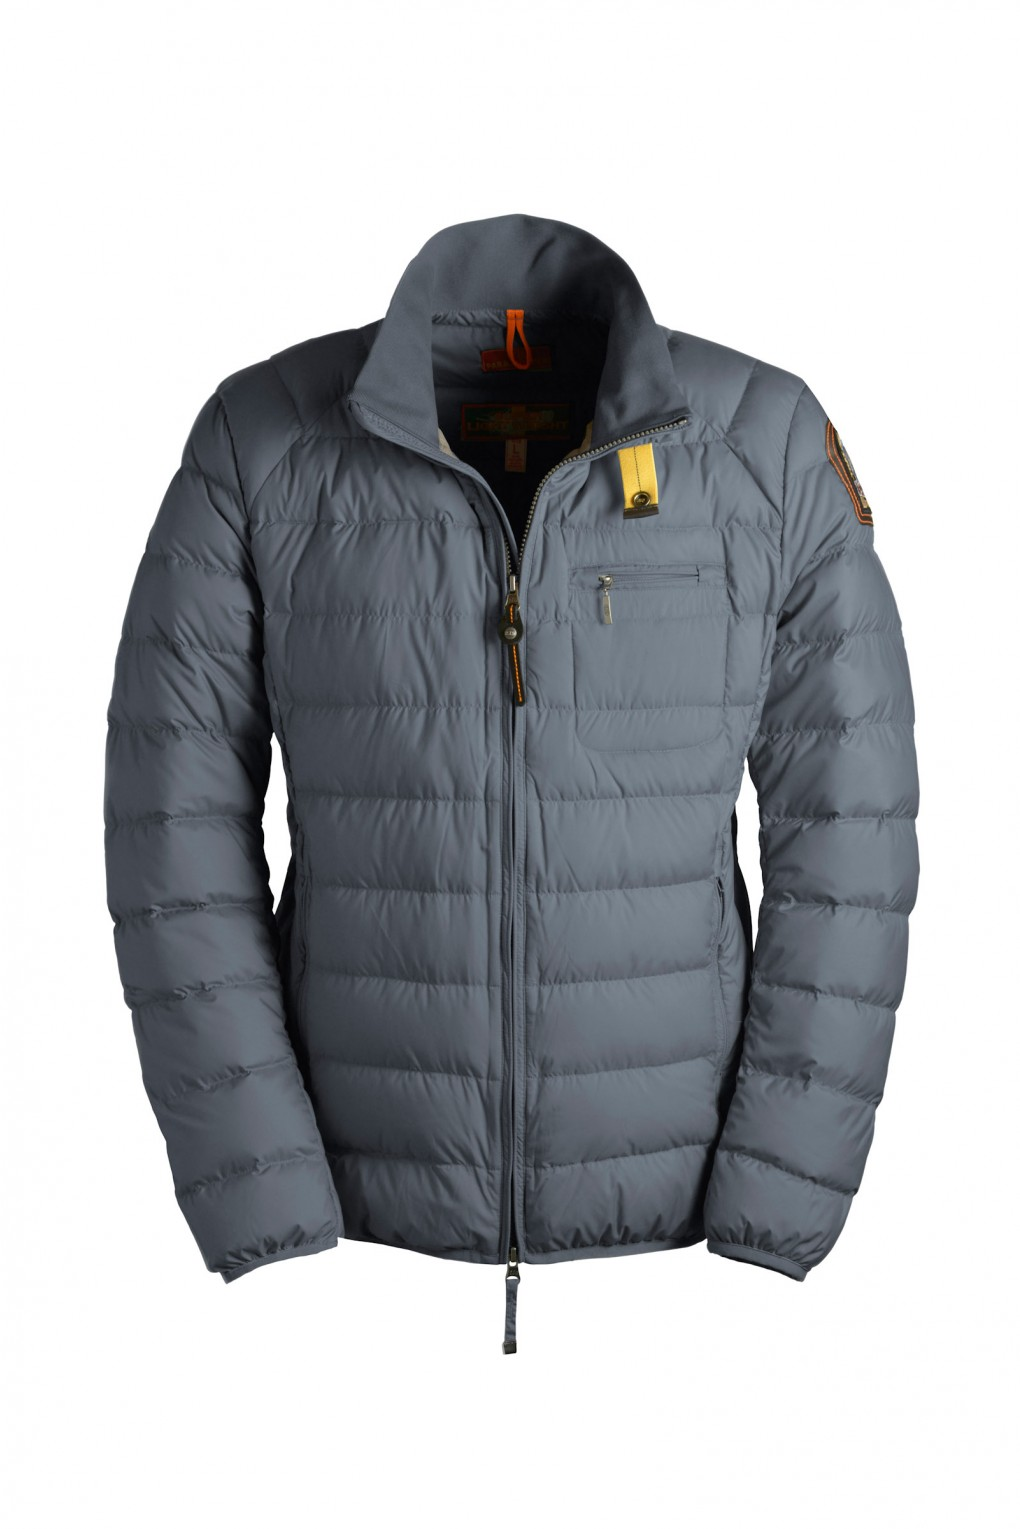 parajumpers UGO man outerwear Anthracite